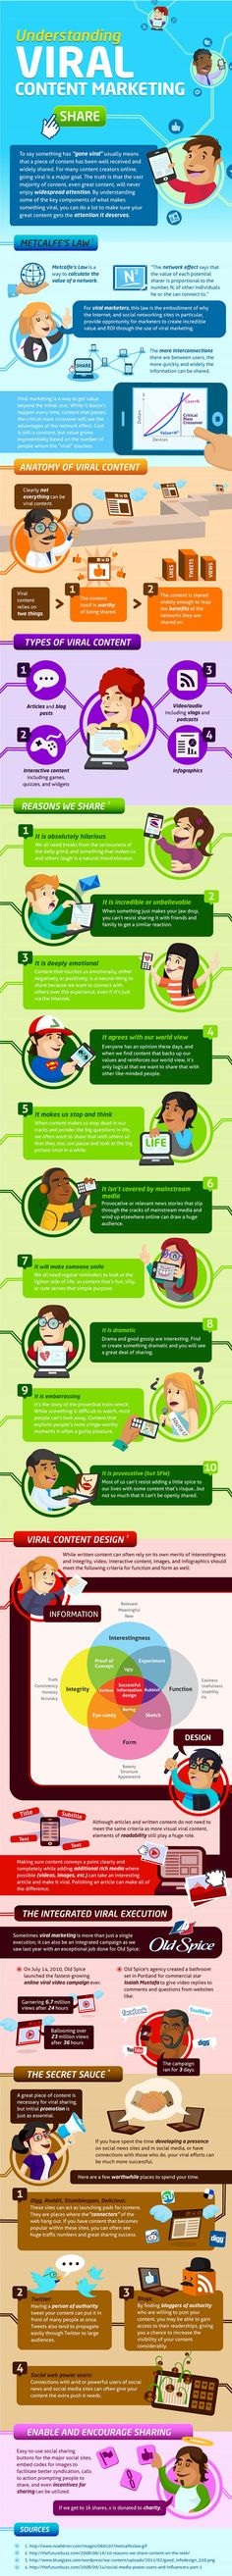 "So what is ""viral-worthy"" content, and how do you go about creating such content? The below infographic summarizes the key elements which contribute to content going viral and how you can potentially develop such a piece of content that will aid both you and your web presence significantly."